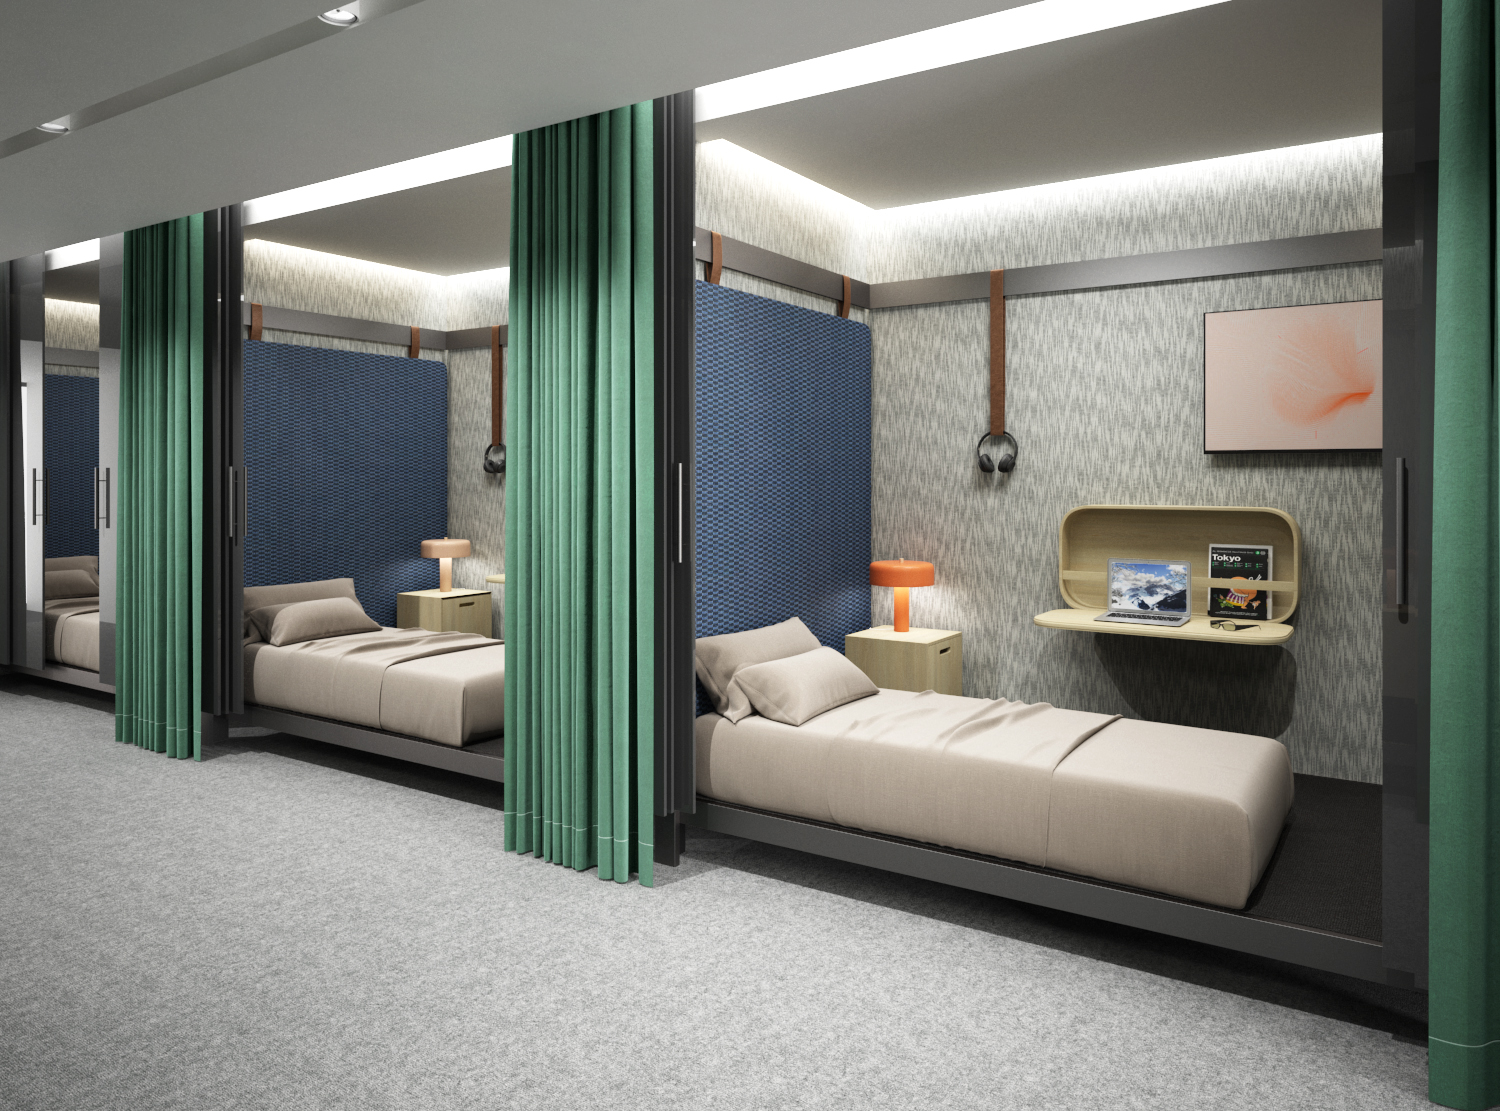 4-Trend-Videos-2020/21-Self-Realization-Render-Capsule-Hotel-Eclectic-Trends